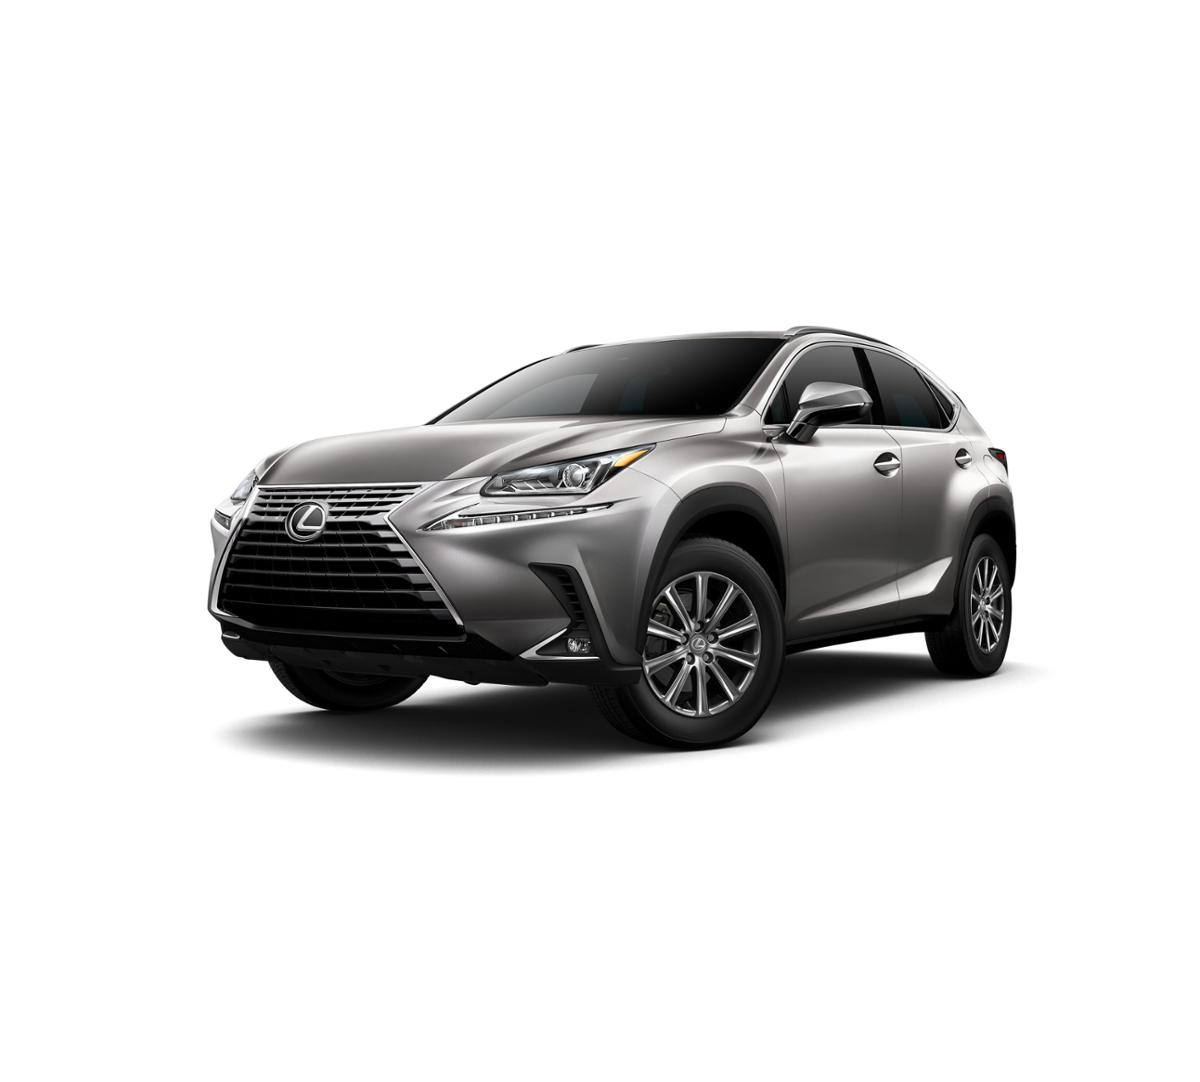 2019 Lexus NX Vehicle Photo in Santa Monica, CA 90404